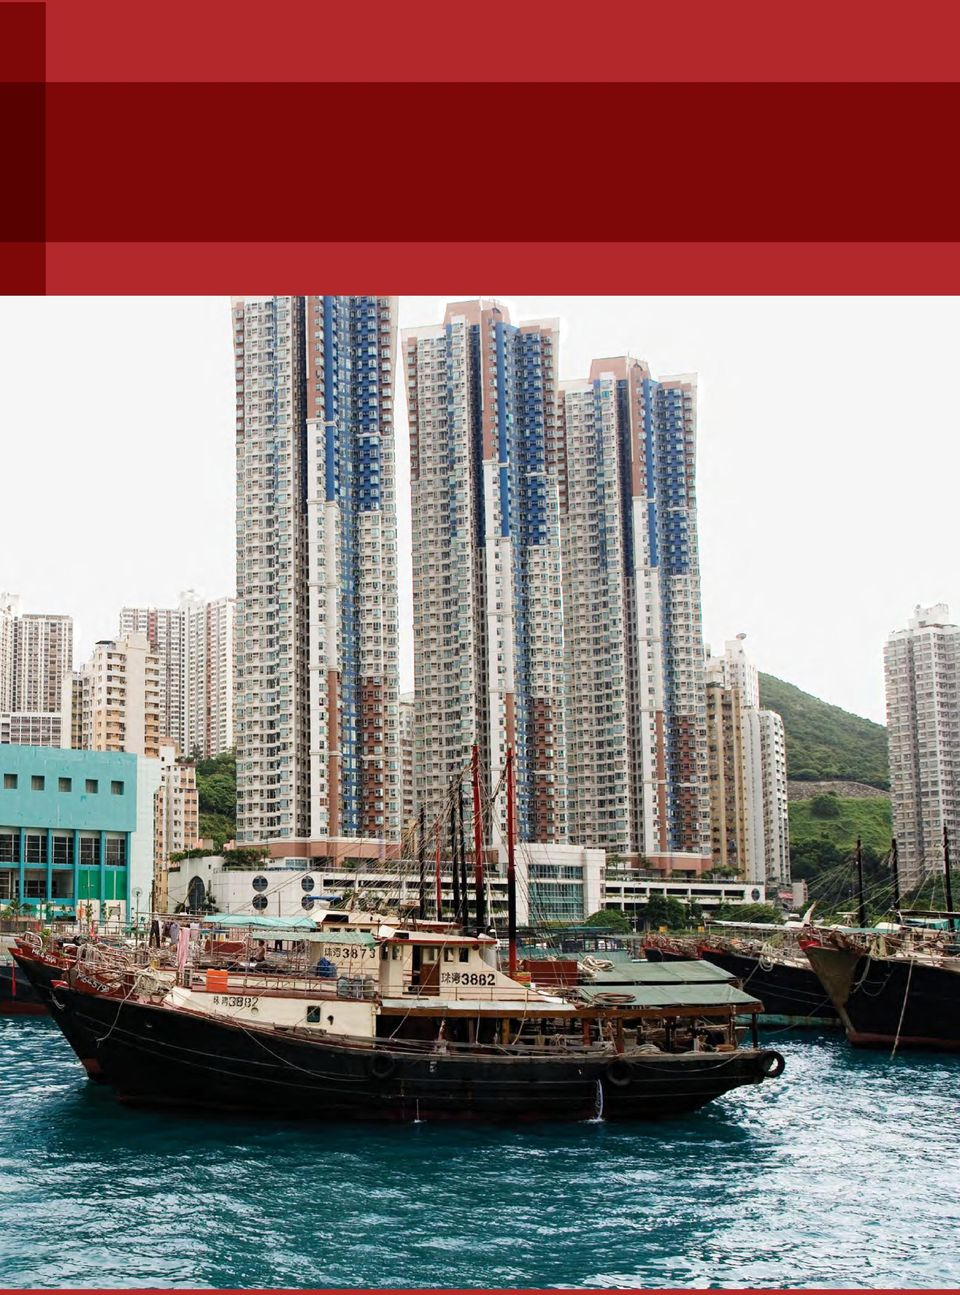 China s 12 th Five-Year Plan (2011-2015) outlines the central government s plans to strengthen Hong Kong s position as a financial centre, especially in the area of offshore RMB business.